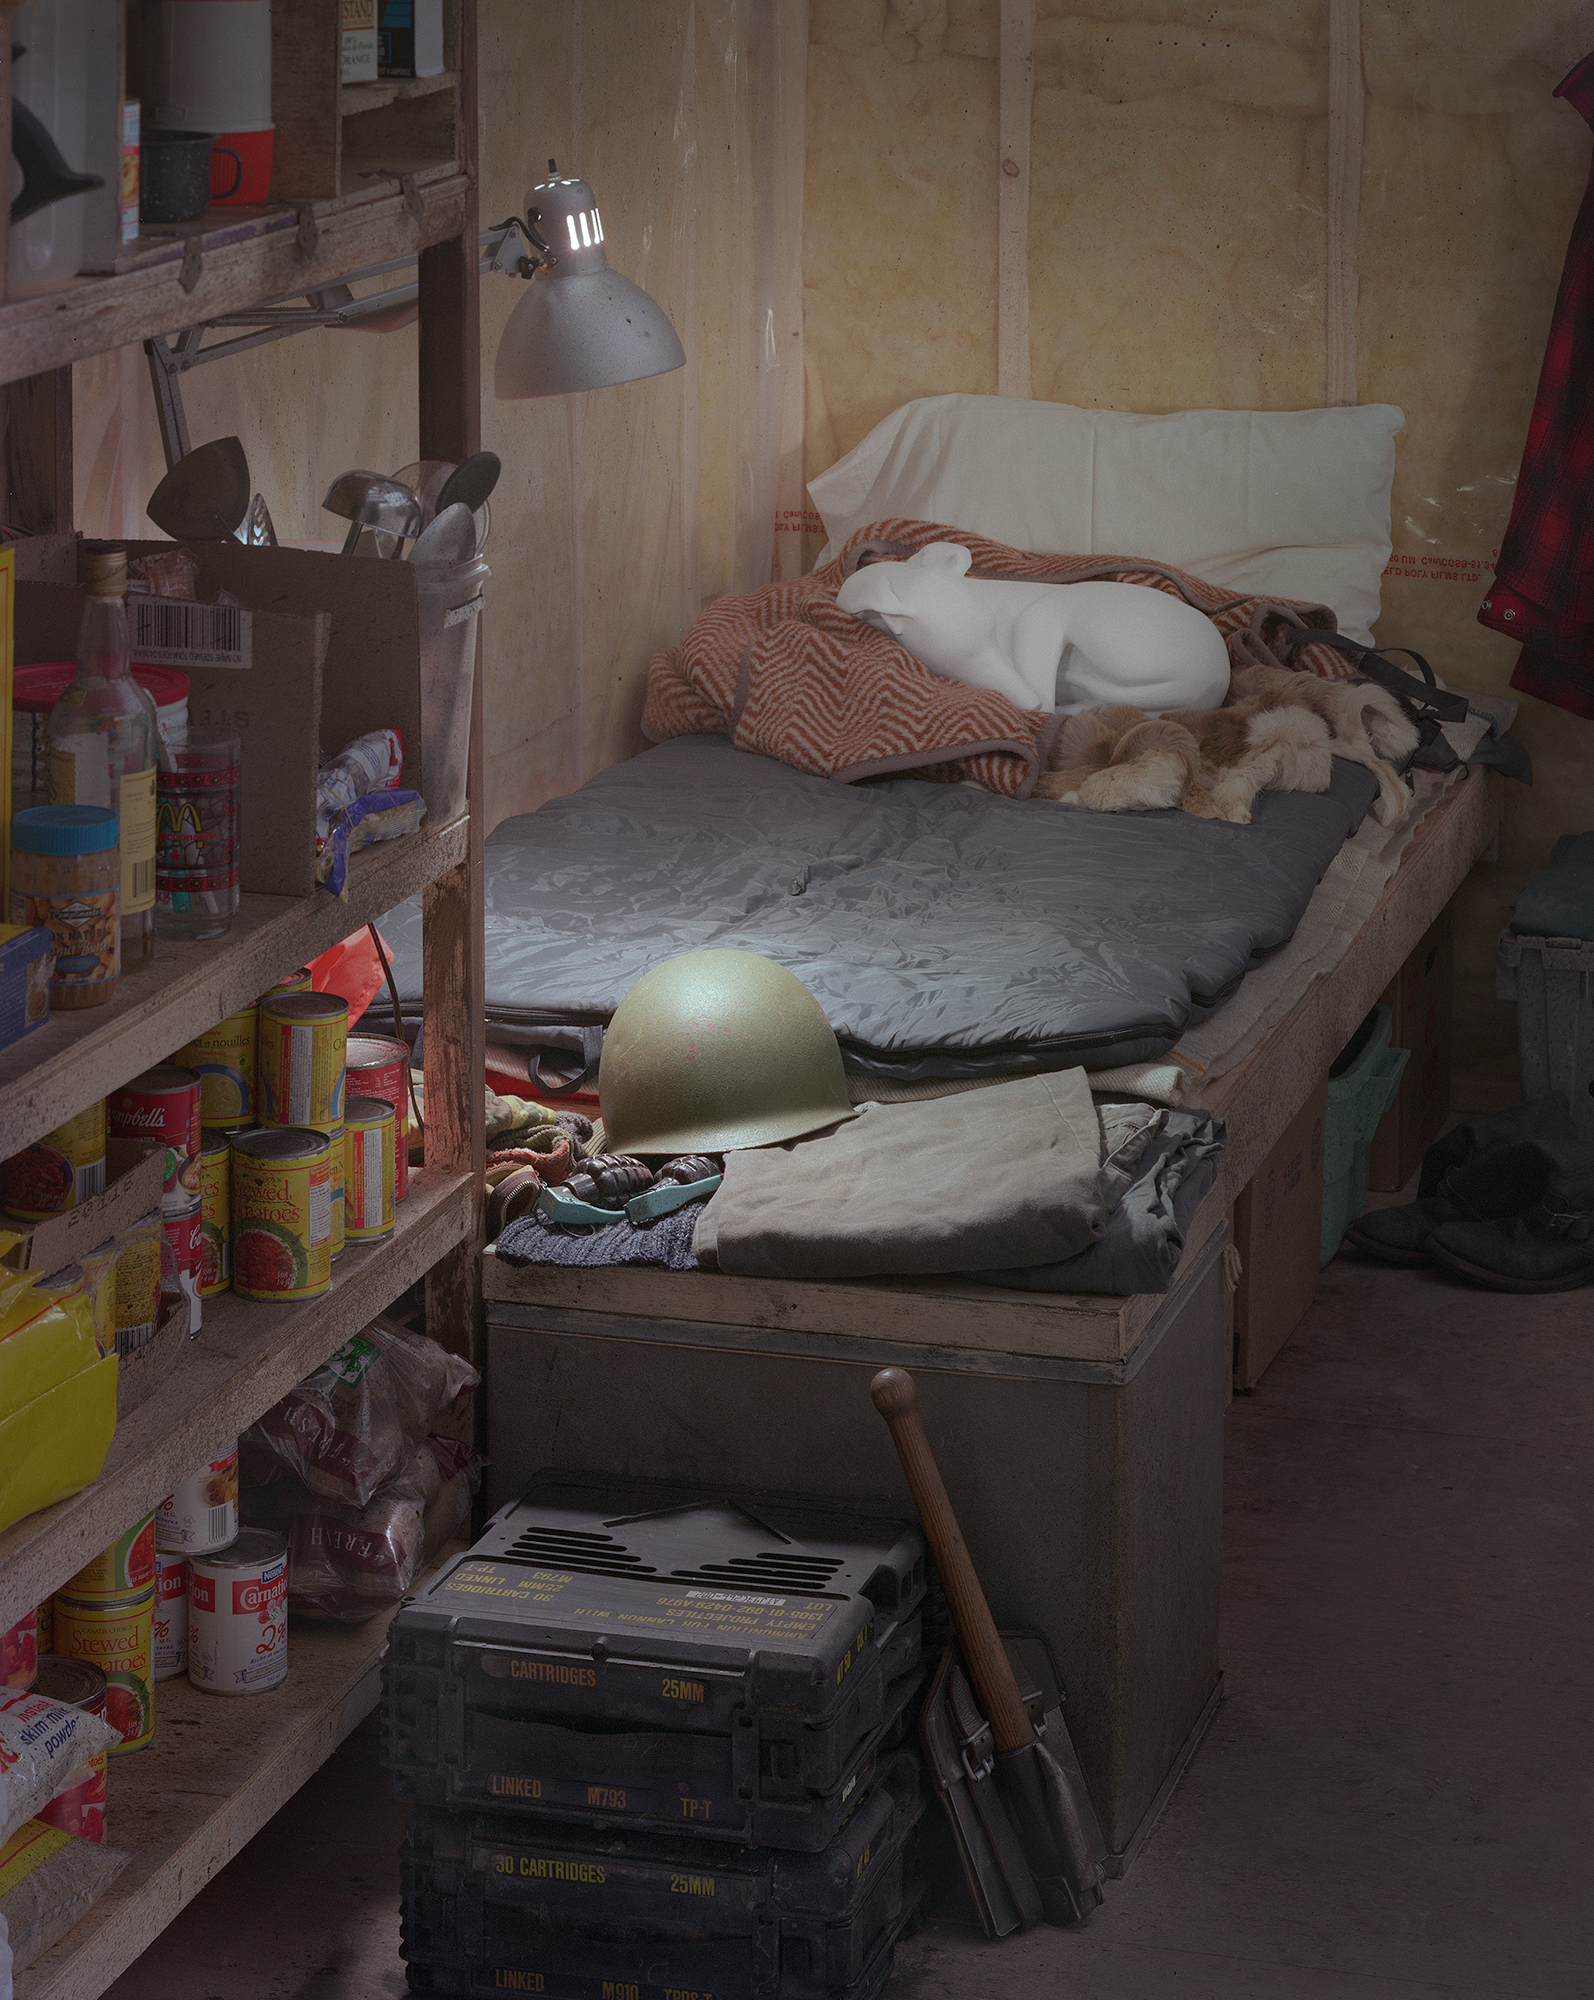 This photograph shows a bed with a pile of blankets, a cast figure of a dog and an army helmet. At the foot of the bed are shelves stocked with non-perishable items. The walls are lined with fiberglass insulation.